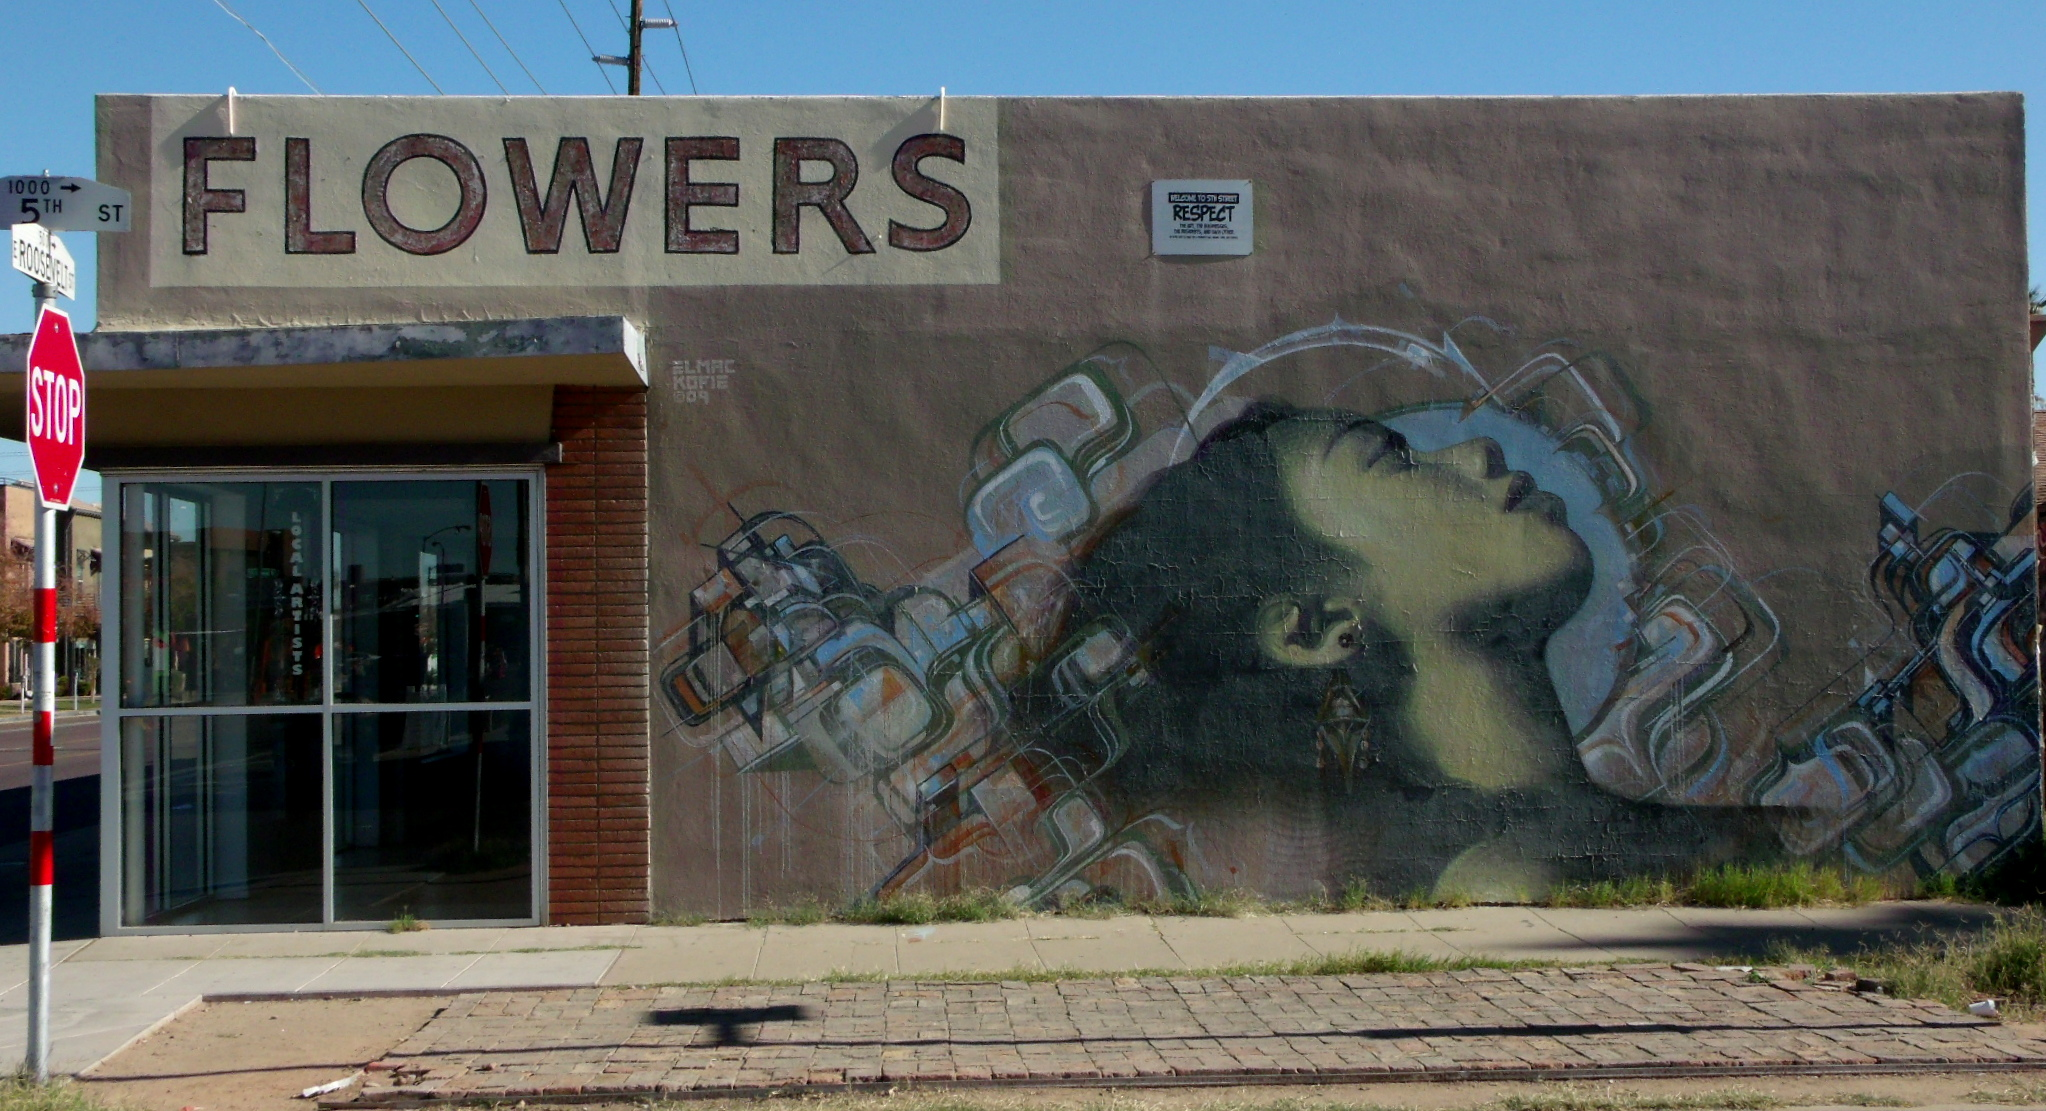 Roosevelt Art District Phoenix Flowers Mural